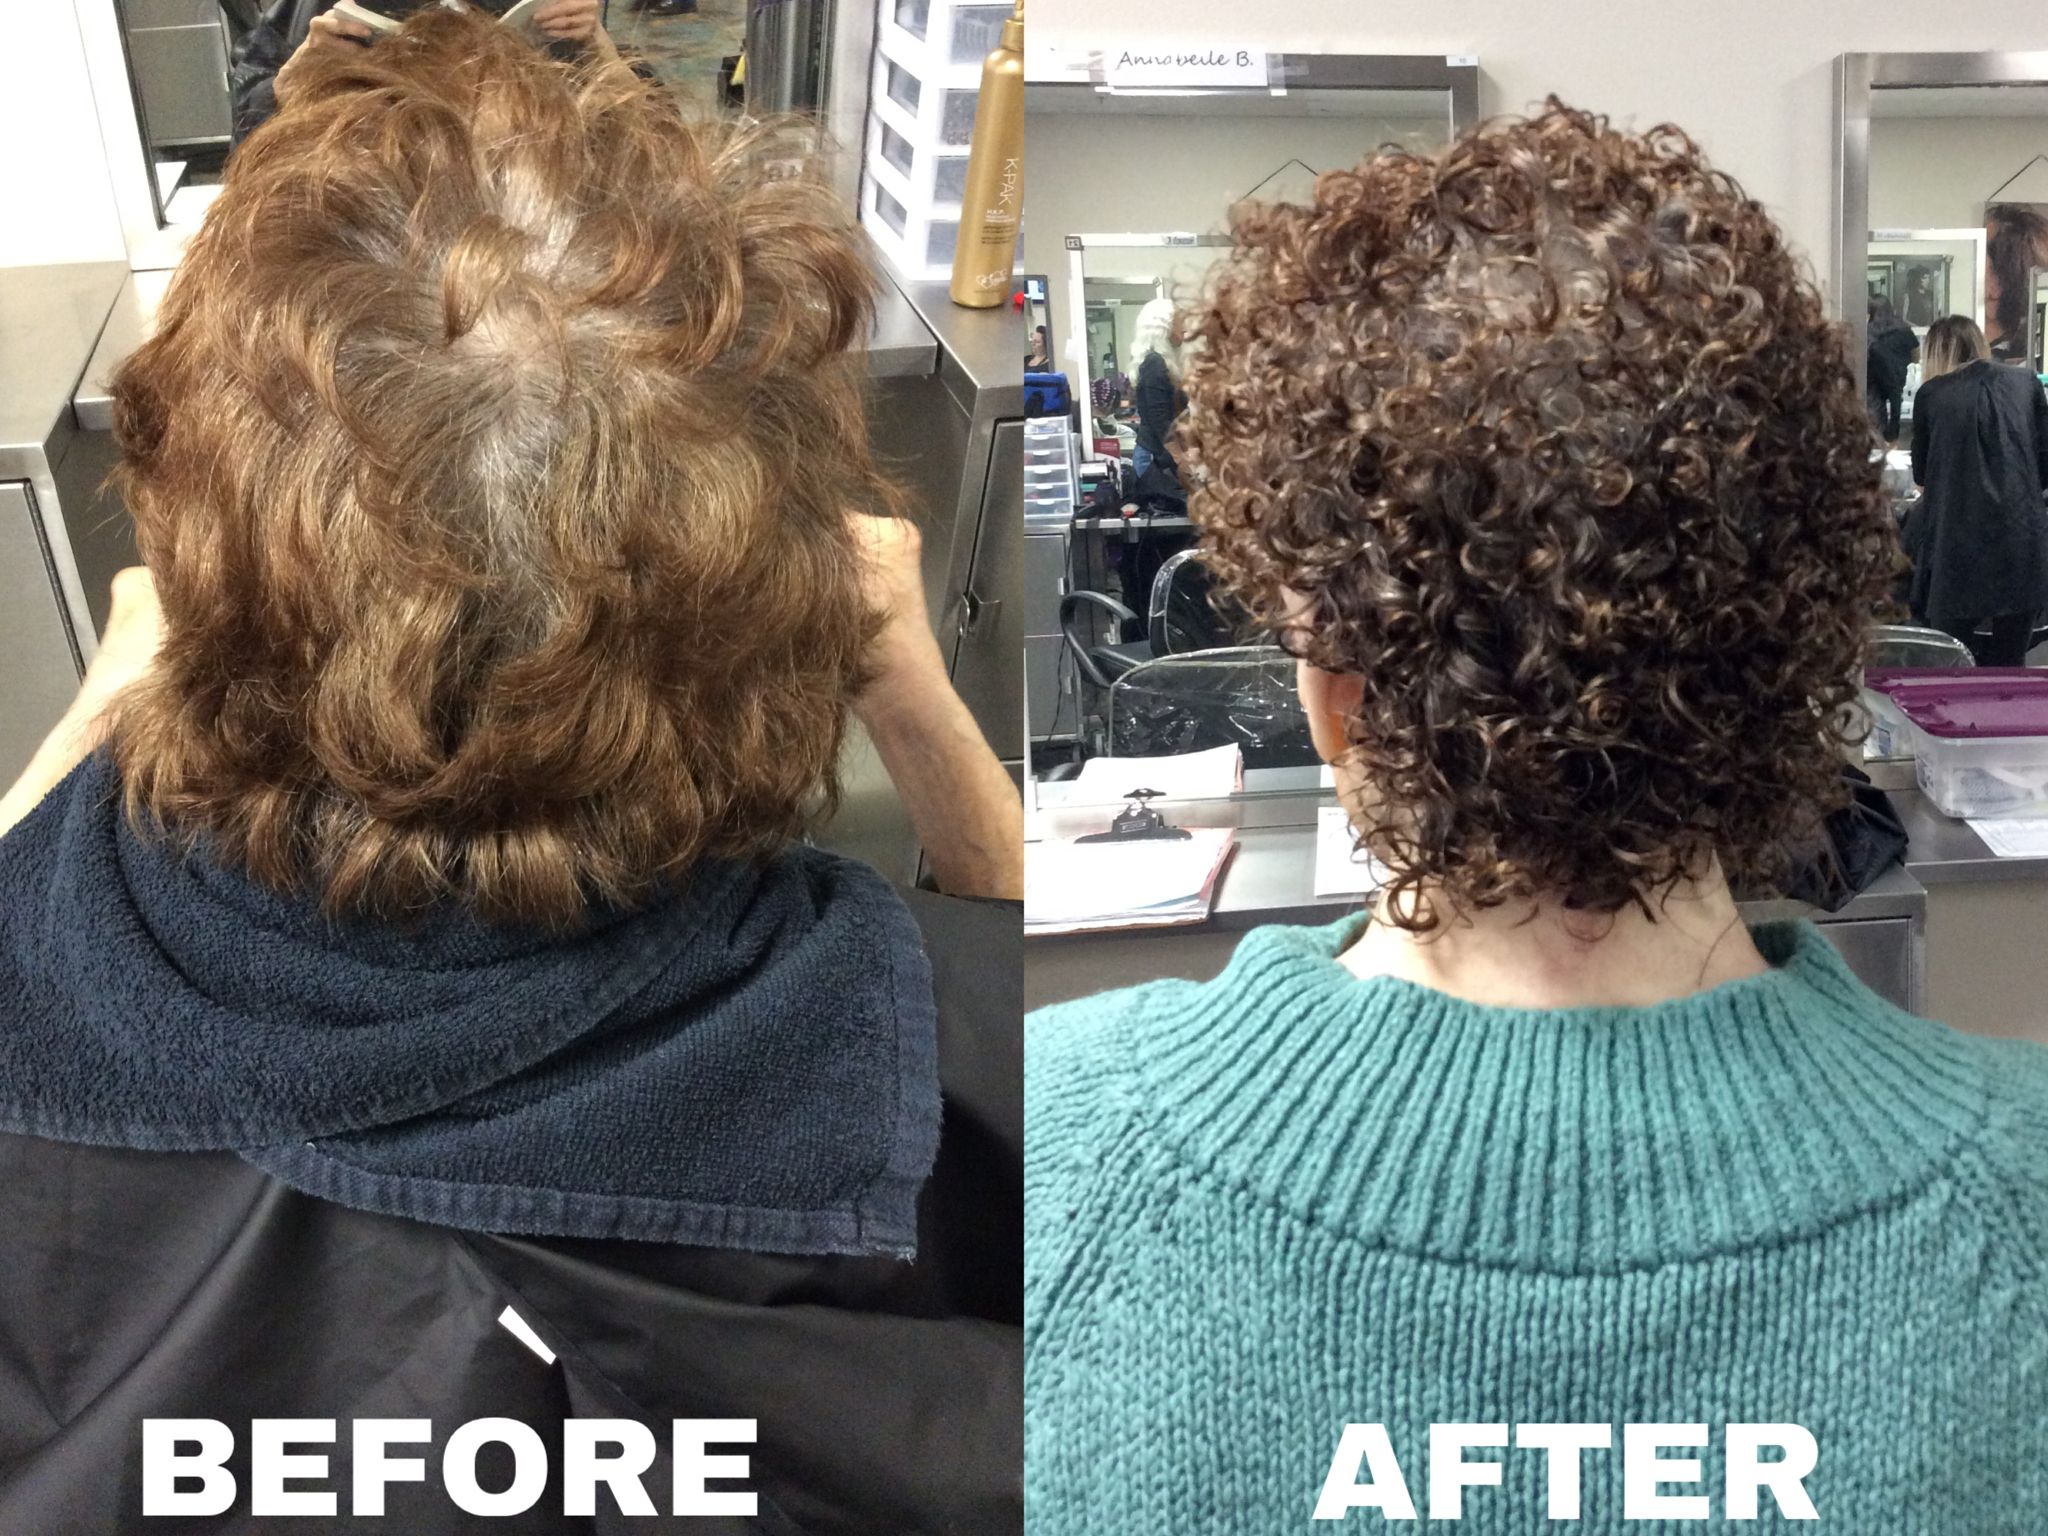 Basic perm using quantum ultra firm option and with yellow rods in